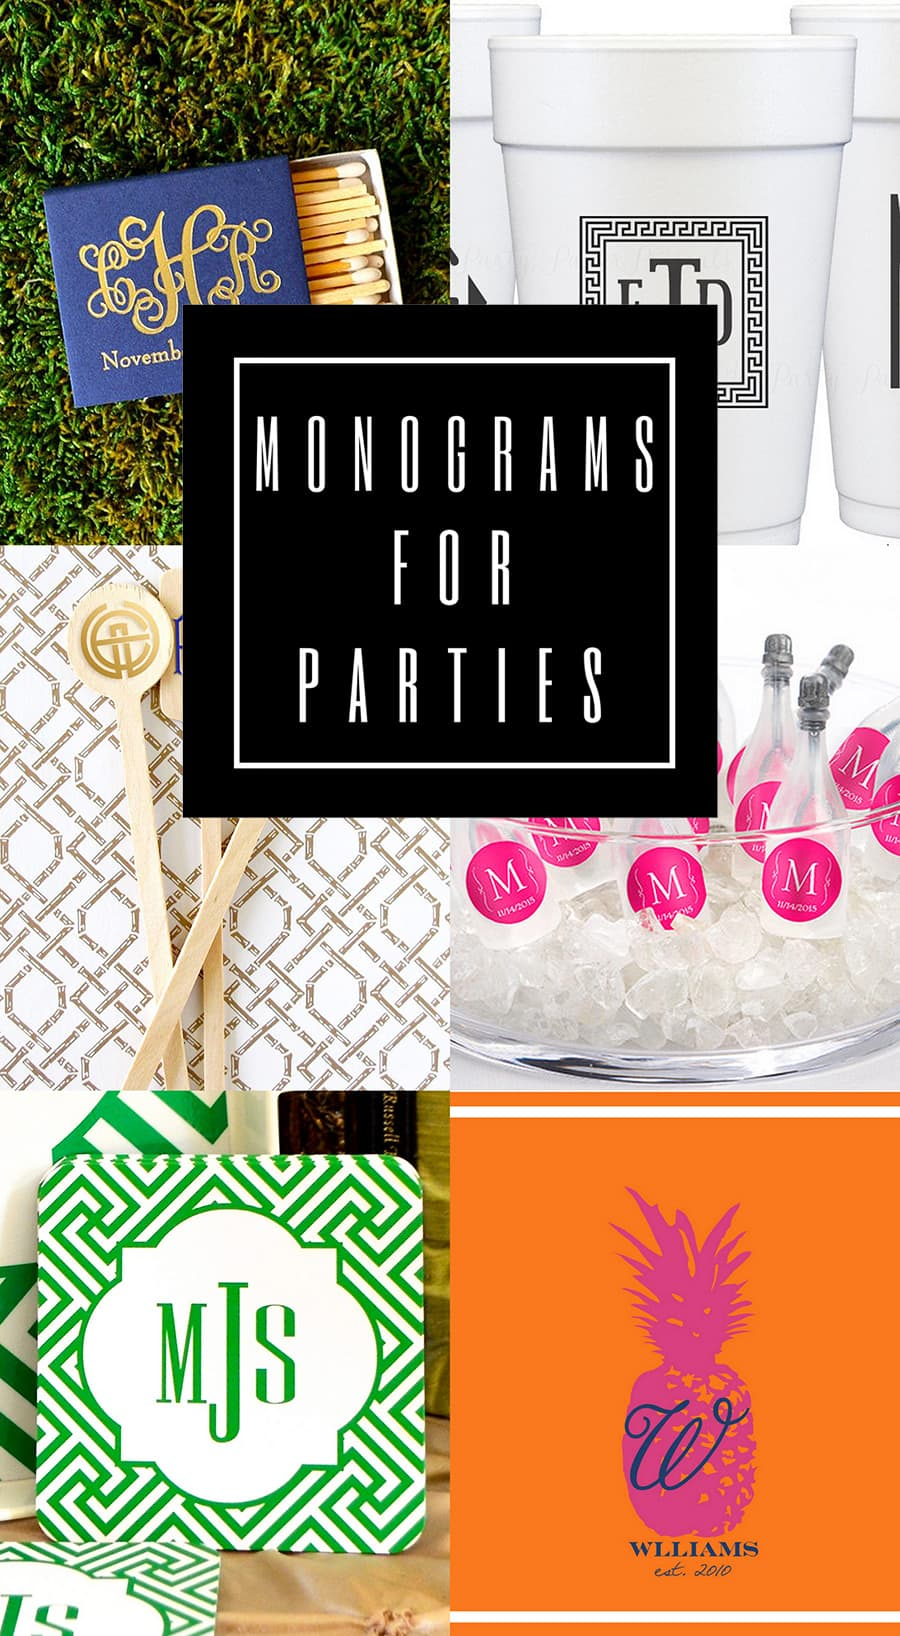 Favorite Monogram Items from Etsy for Parties and Weddings